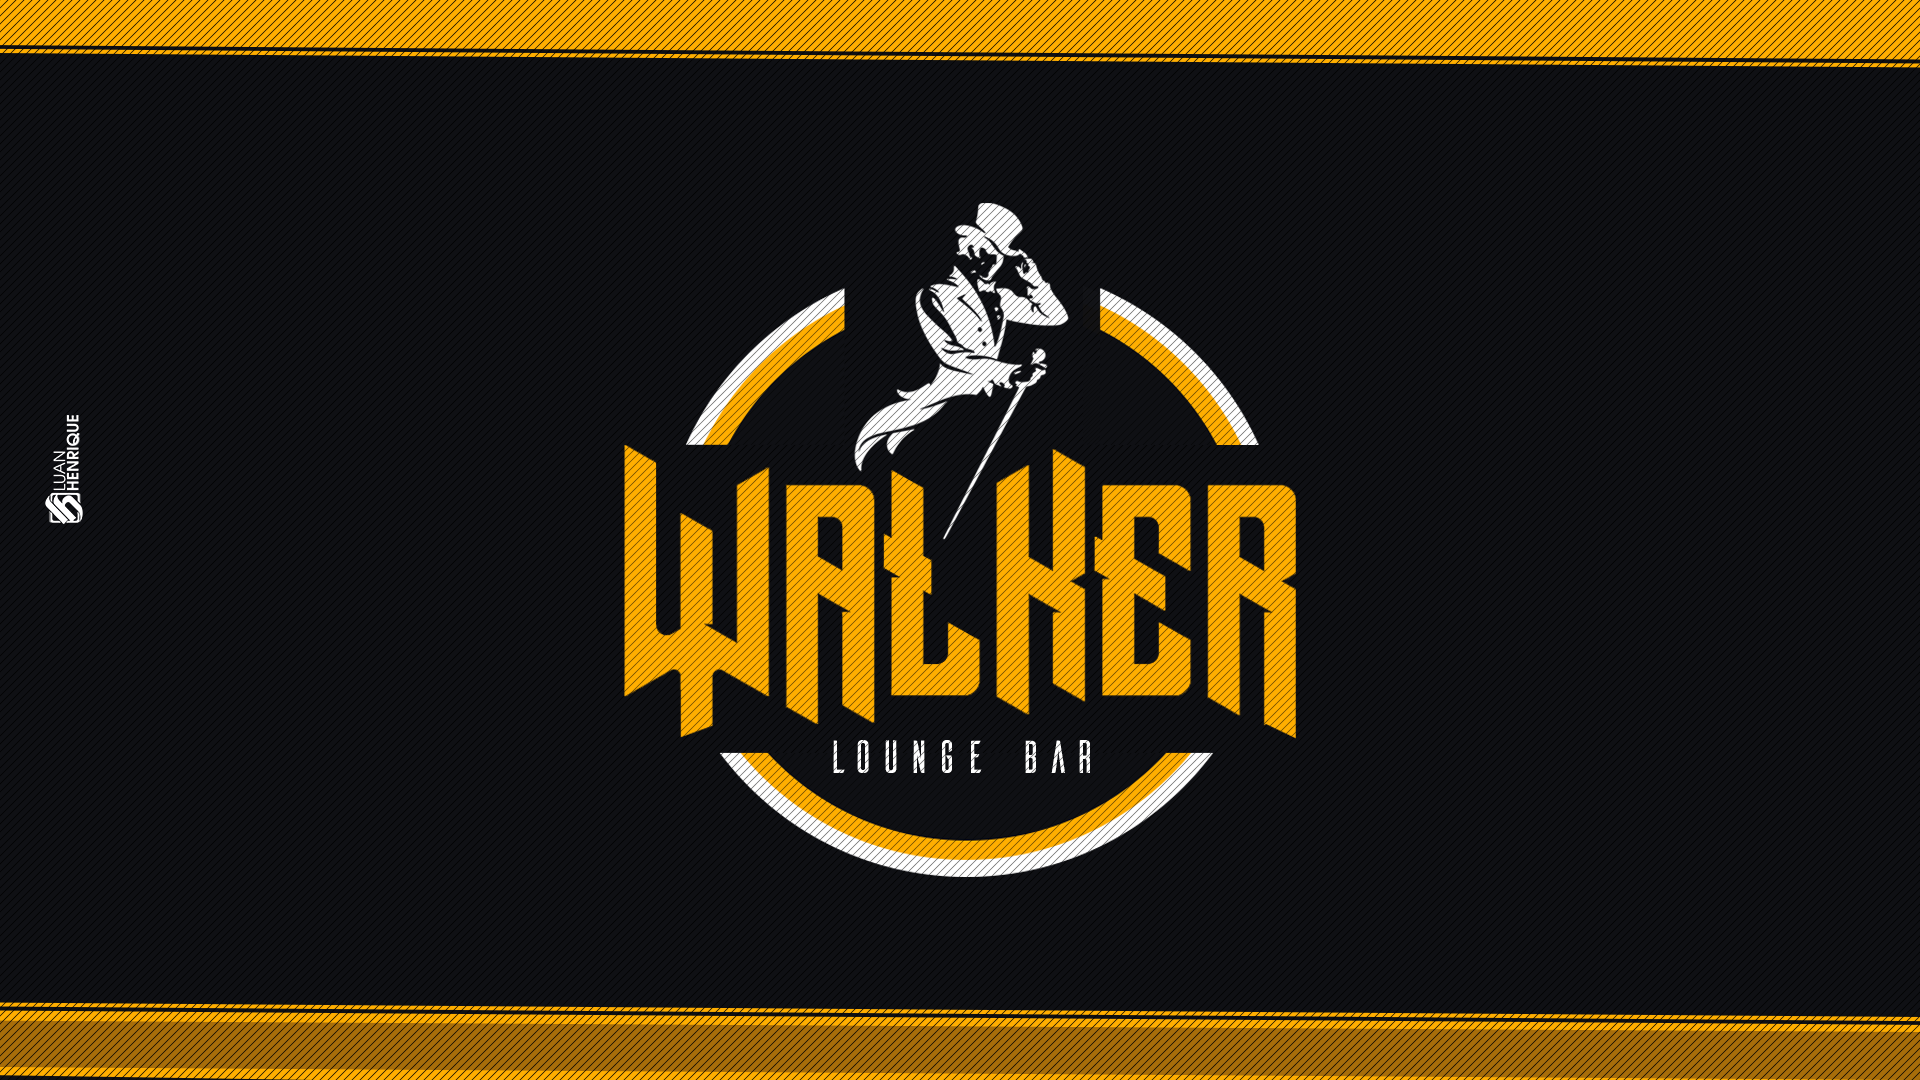 Walker Lounge Bar